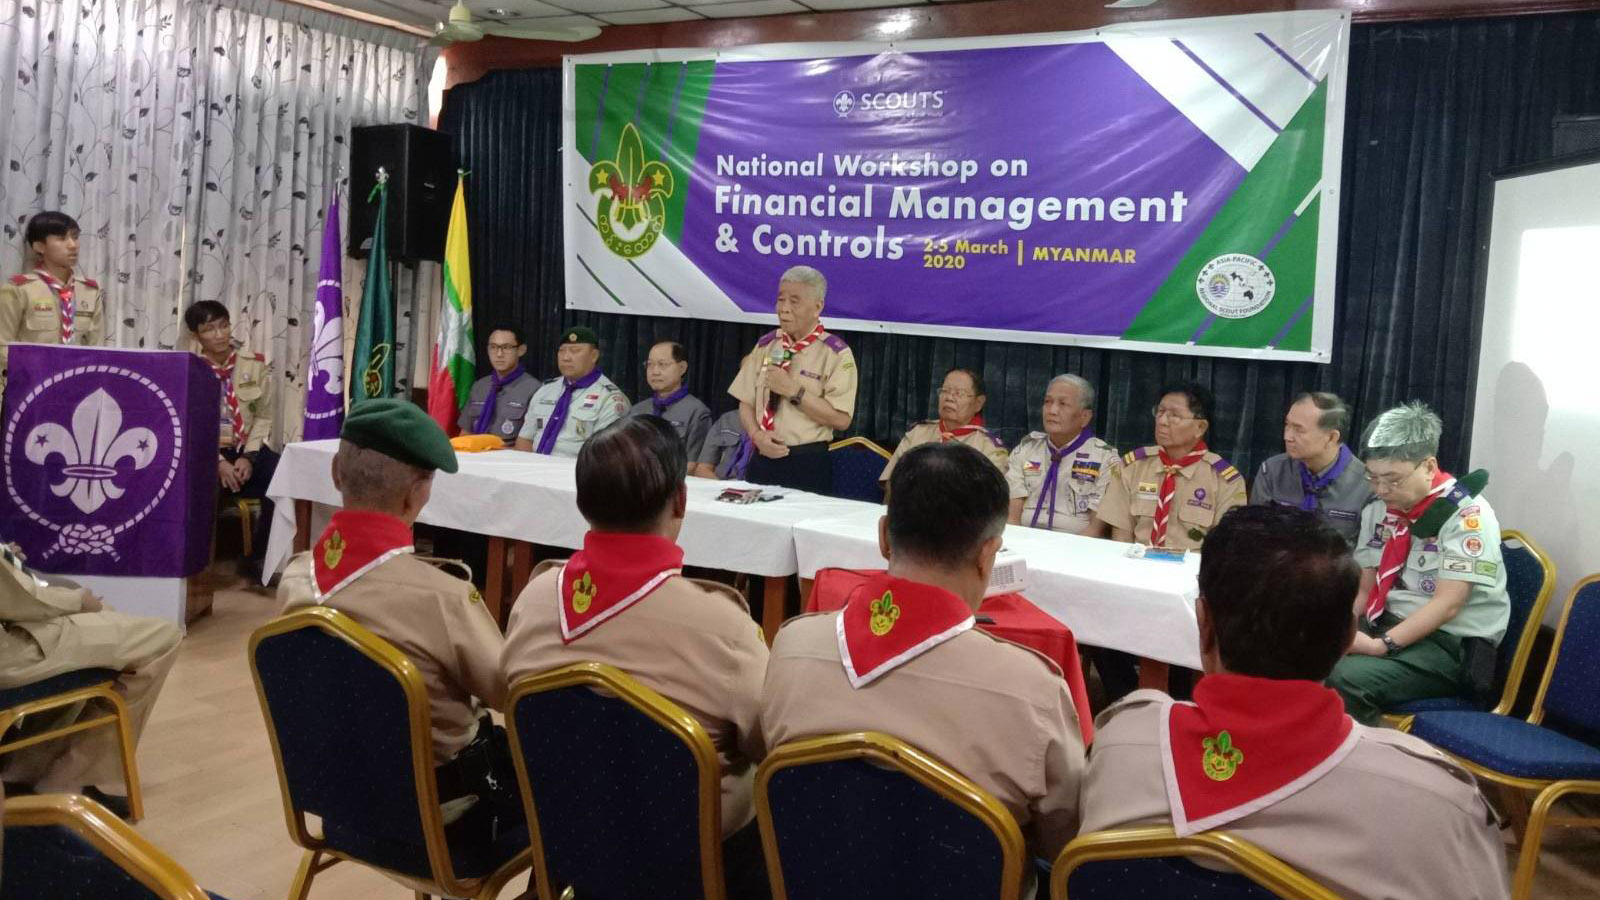 Chief Commissioner of Myanmar Scout Association Dr. Tin Nyo delivers a speech at opening ceremony of National Workshop on Financial Management and Controls.Photo: Supplied